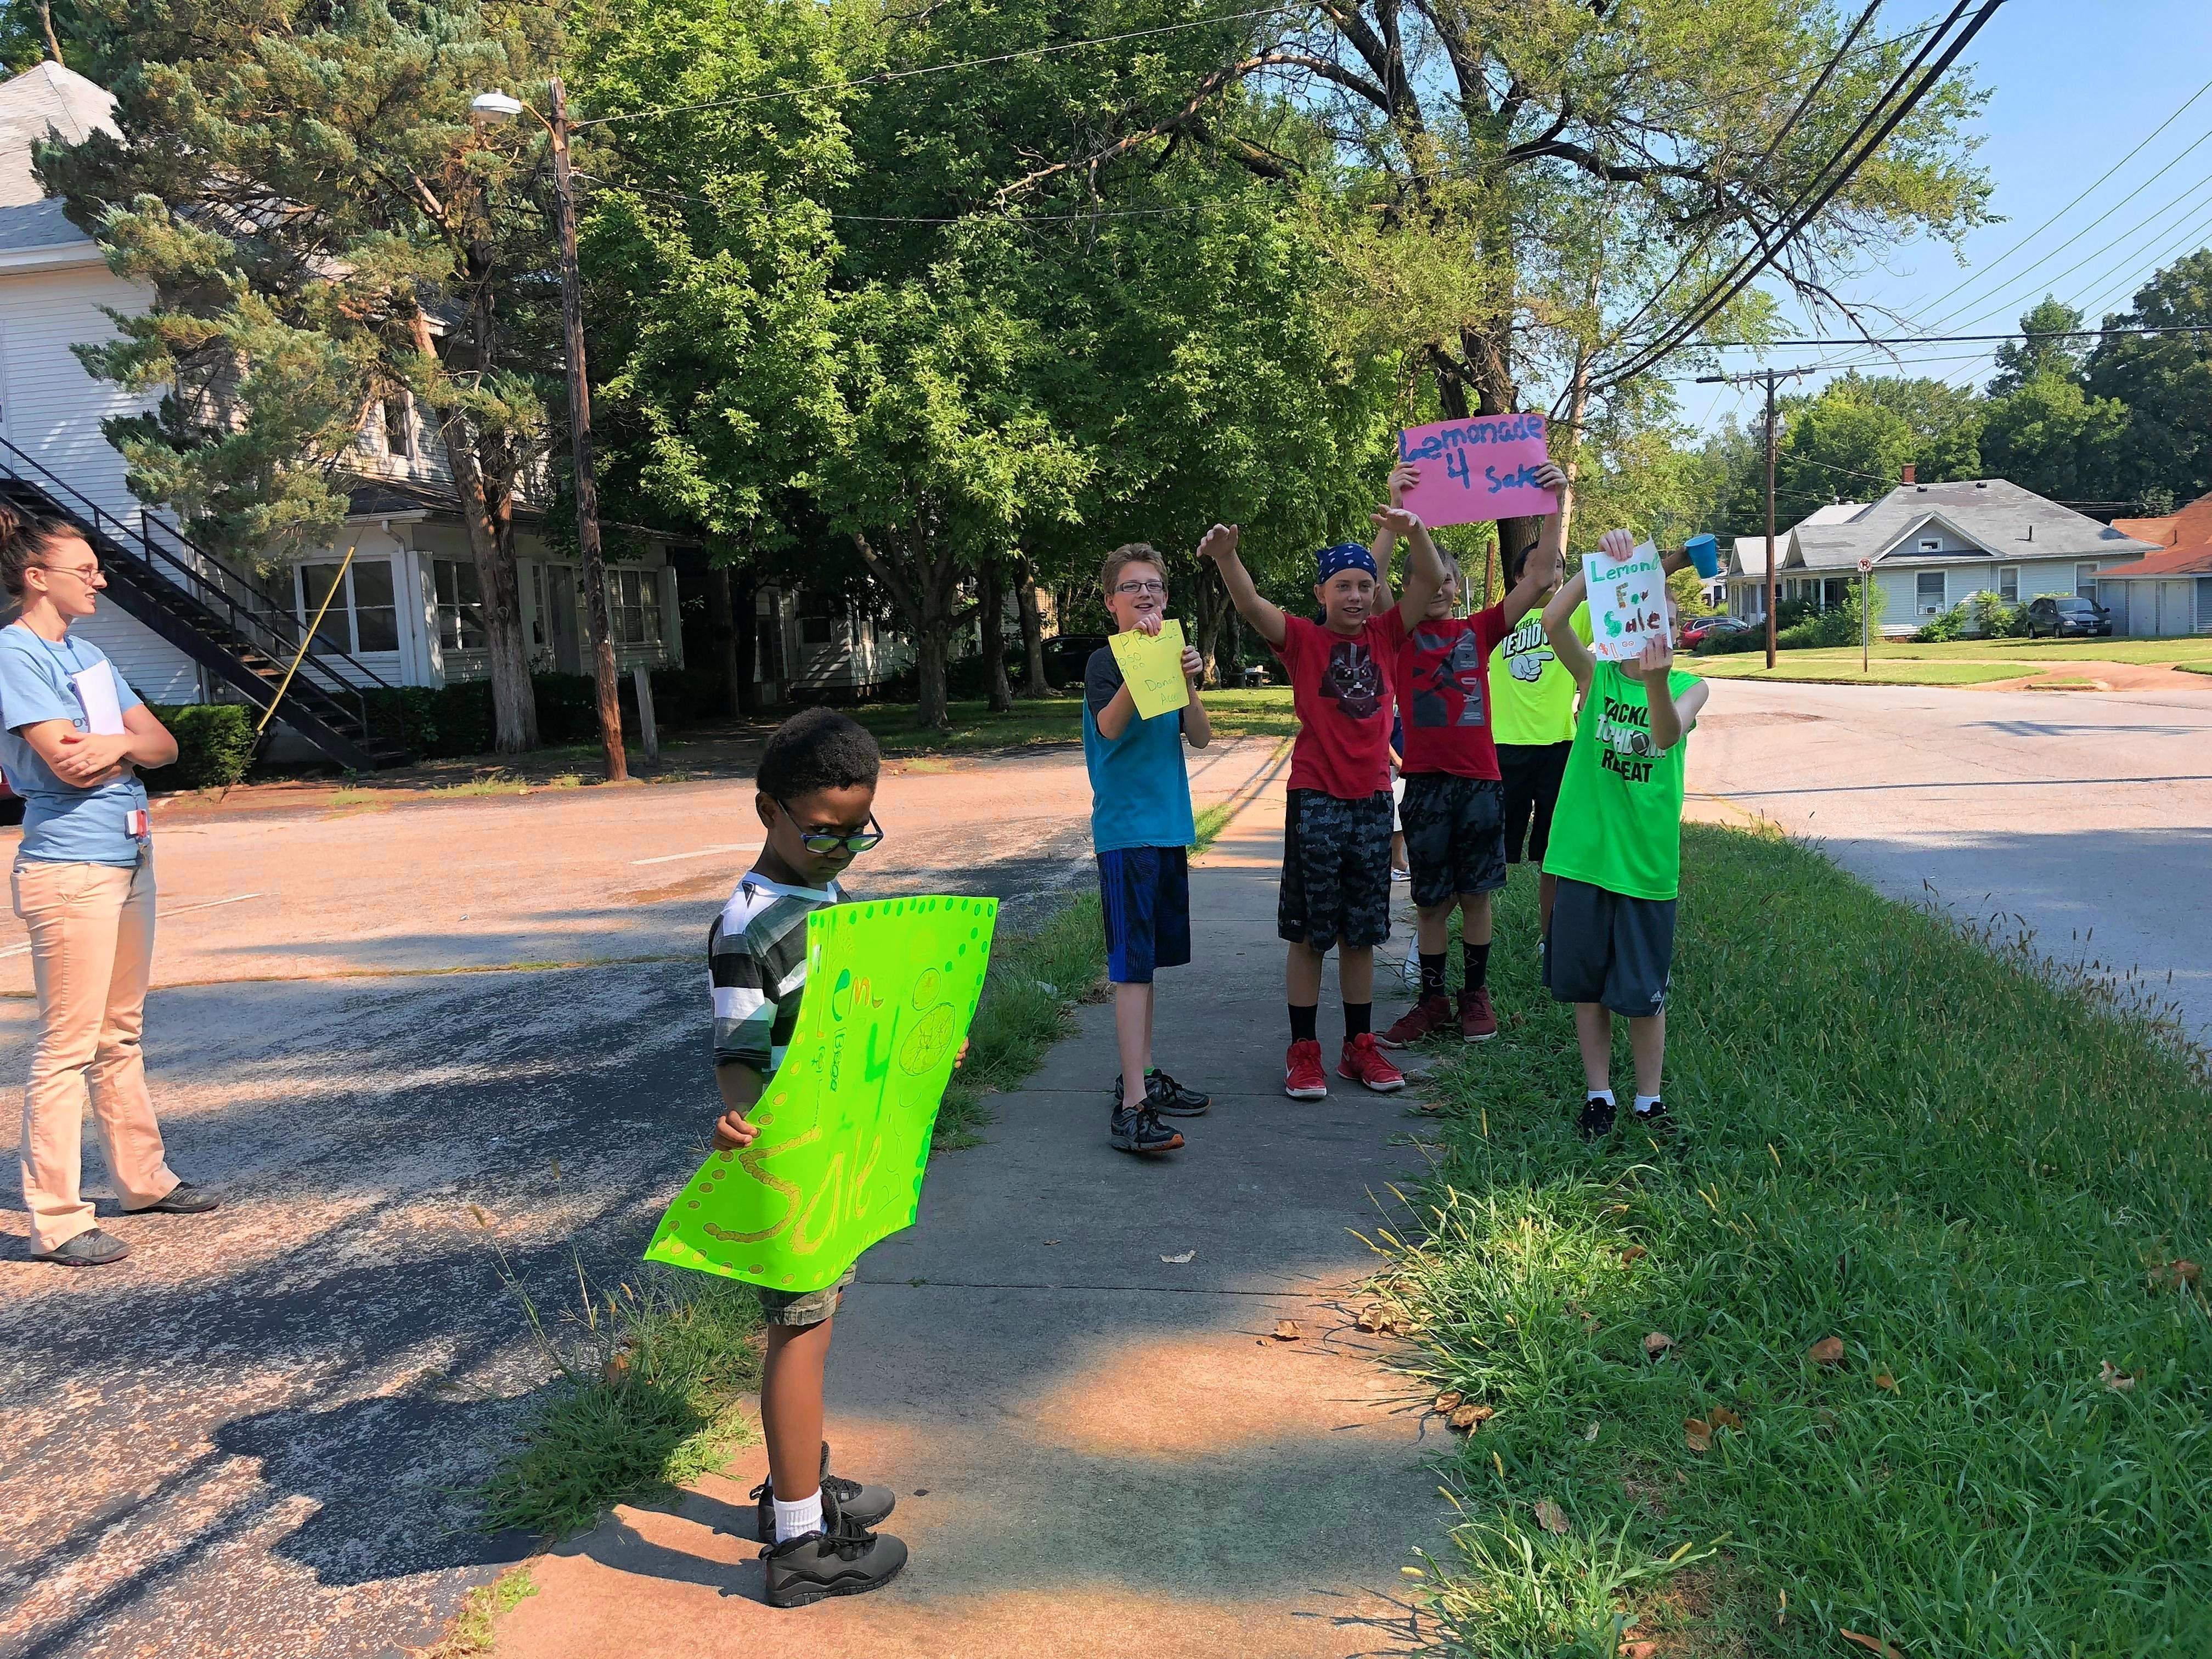 Attracting customers was part of the learning experience for members of the Boys and Girls Club of Carbondale at Tuesday's lemonade sale.